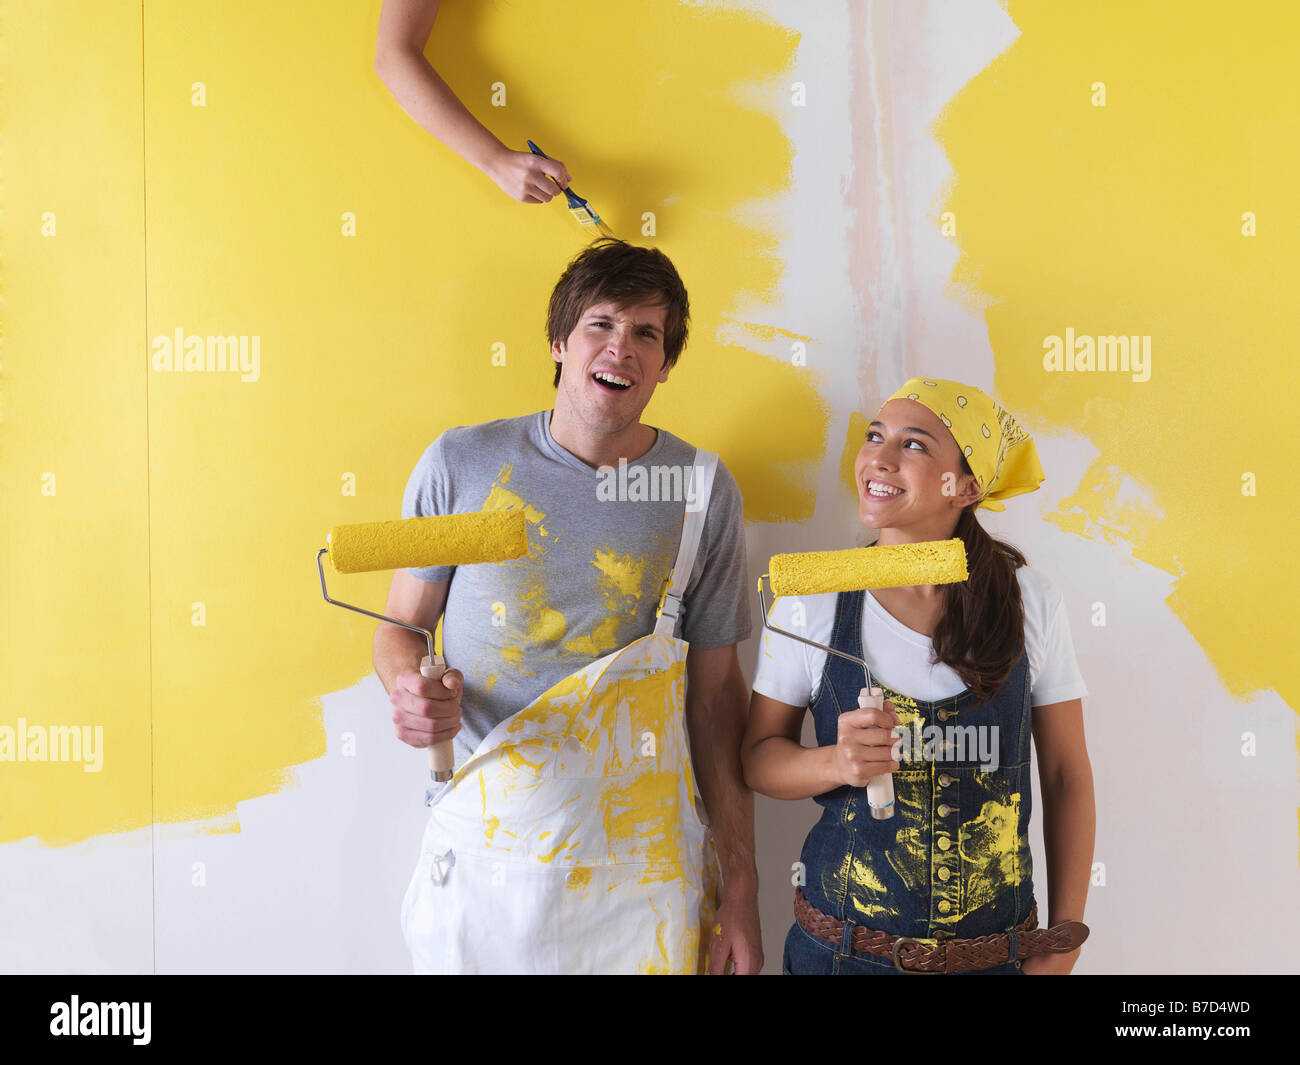 Couple messing around with paint. - Stock Image